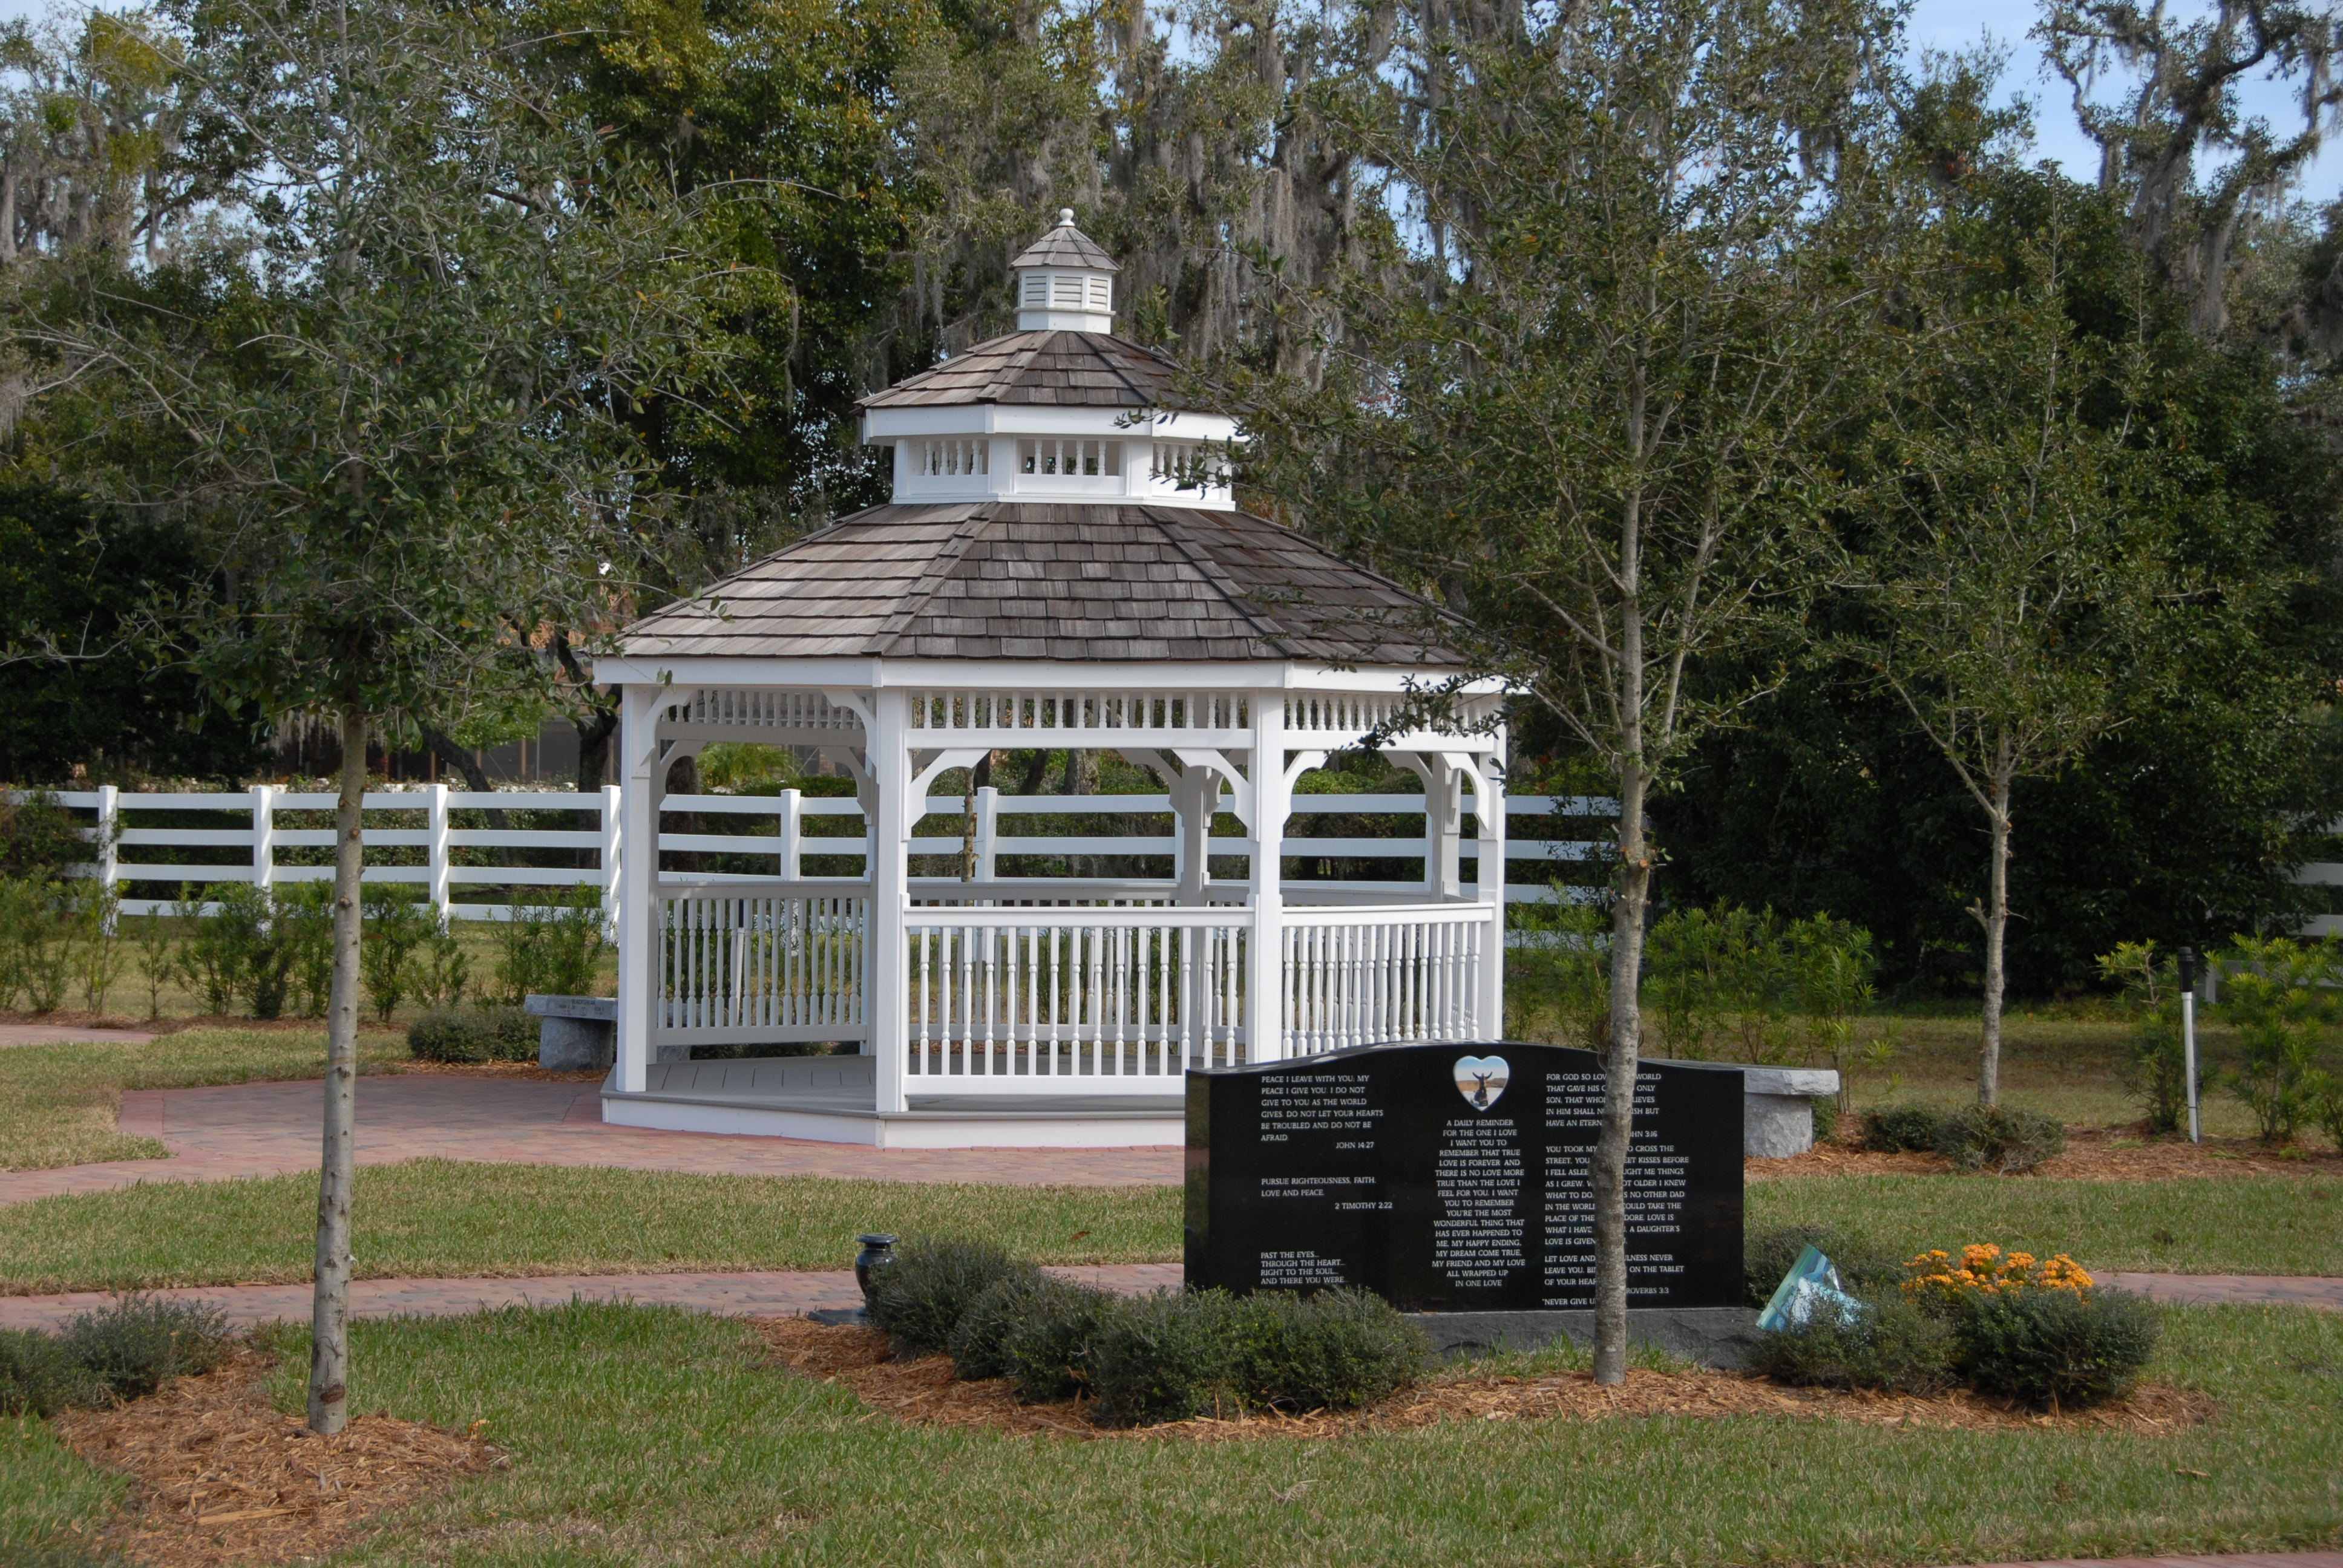 Osceola Memory Gardens Cemetery Funeral Homes & Crematory image 2